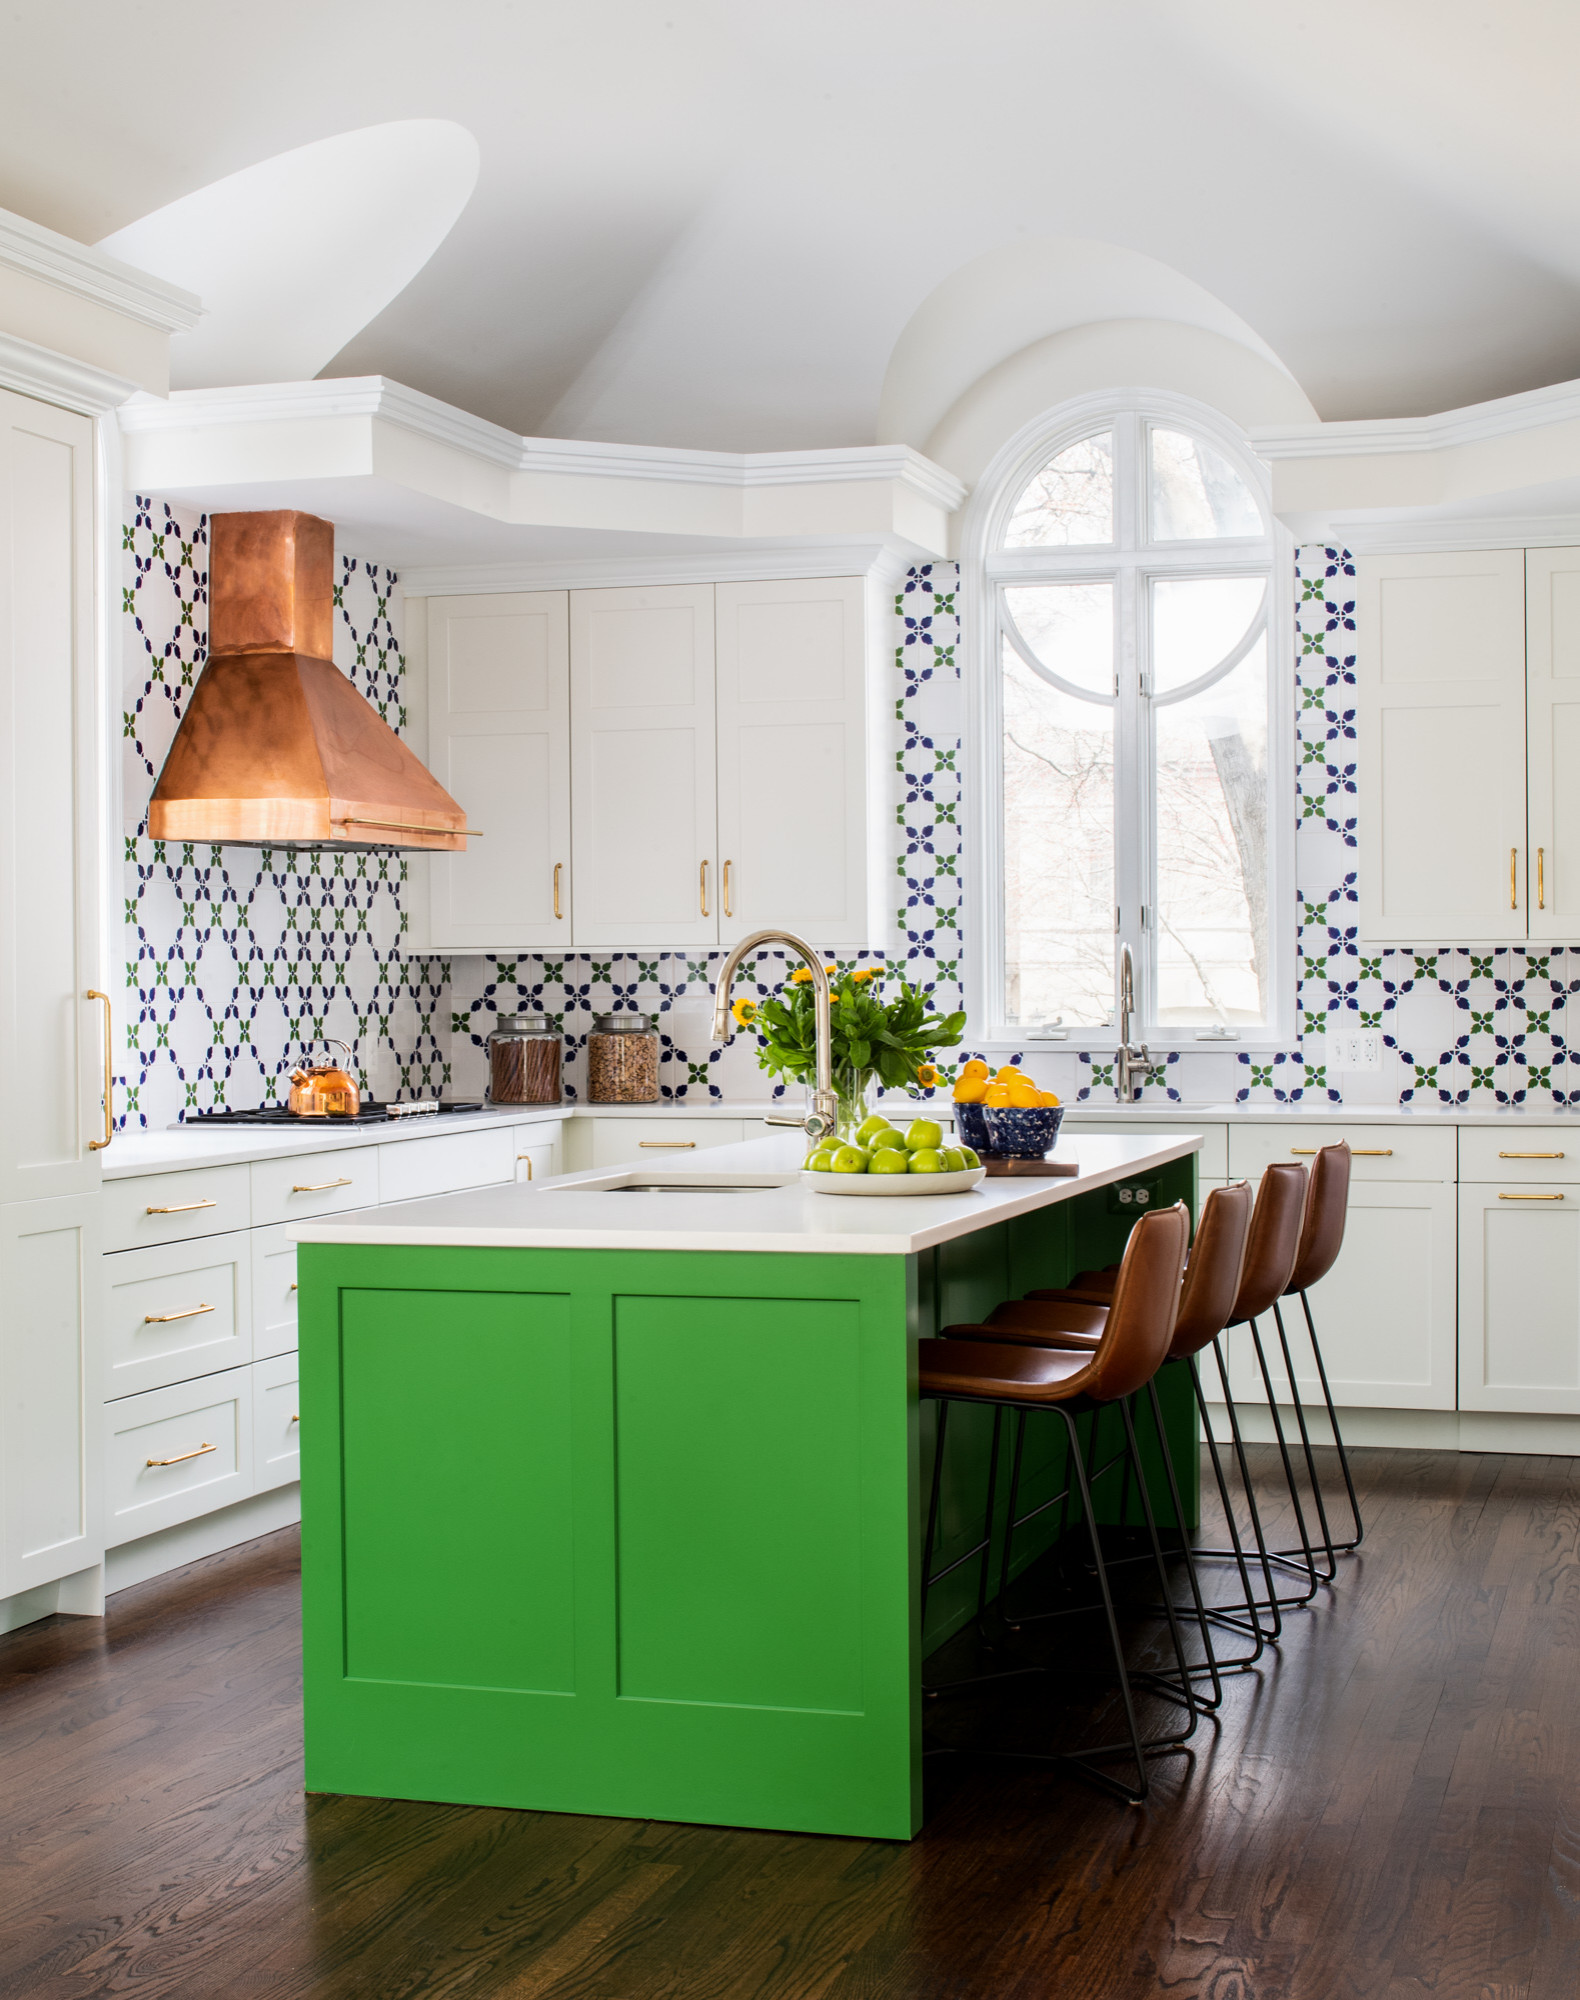 75 Beautiful Kitchen With Multicolored Backsplash Pictures Ideas January 2021 Houzz